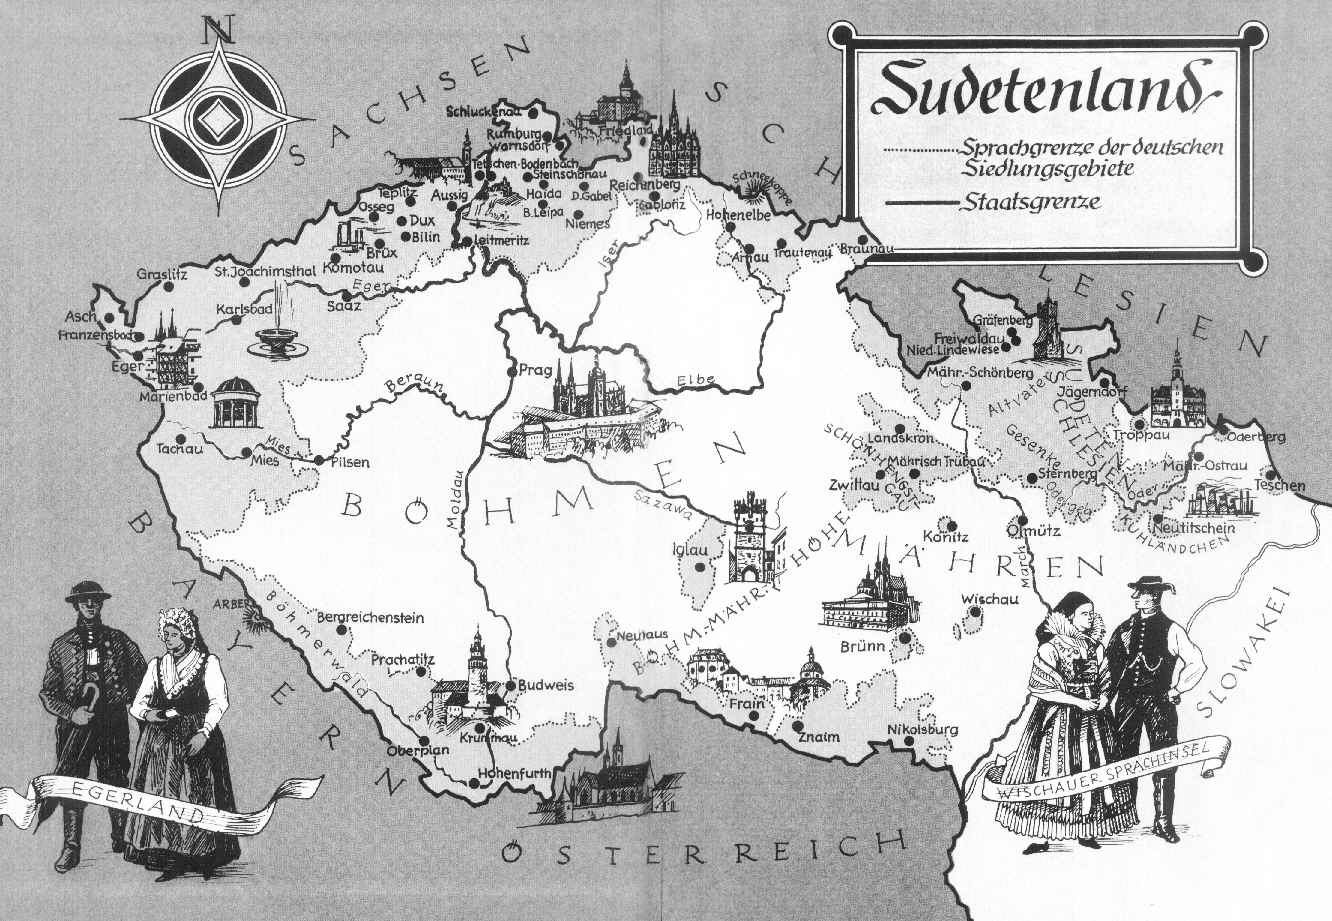 photo3 a period mapping of the sudetenland area source unknown